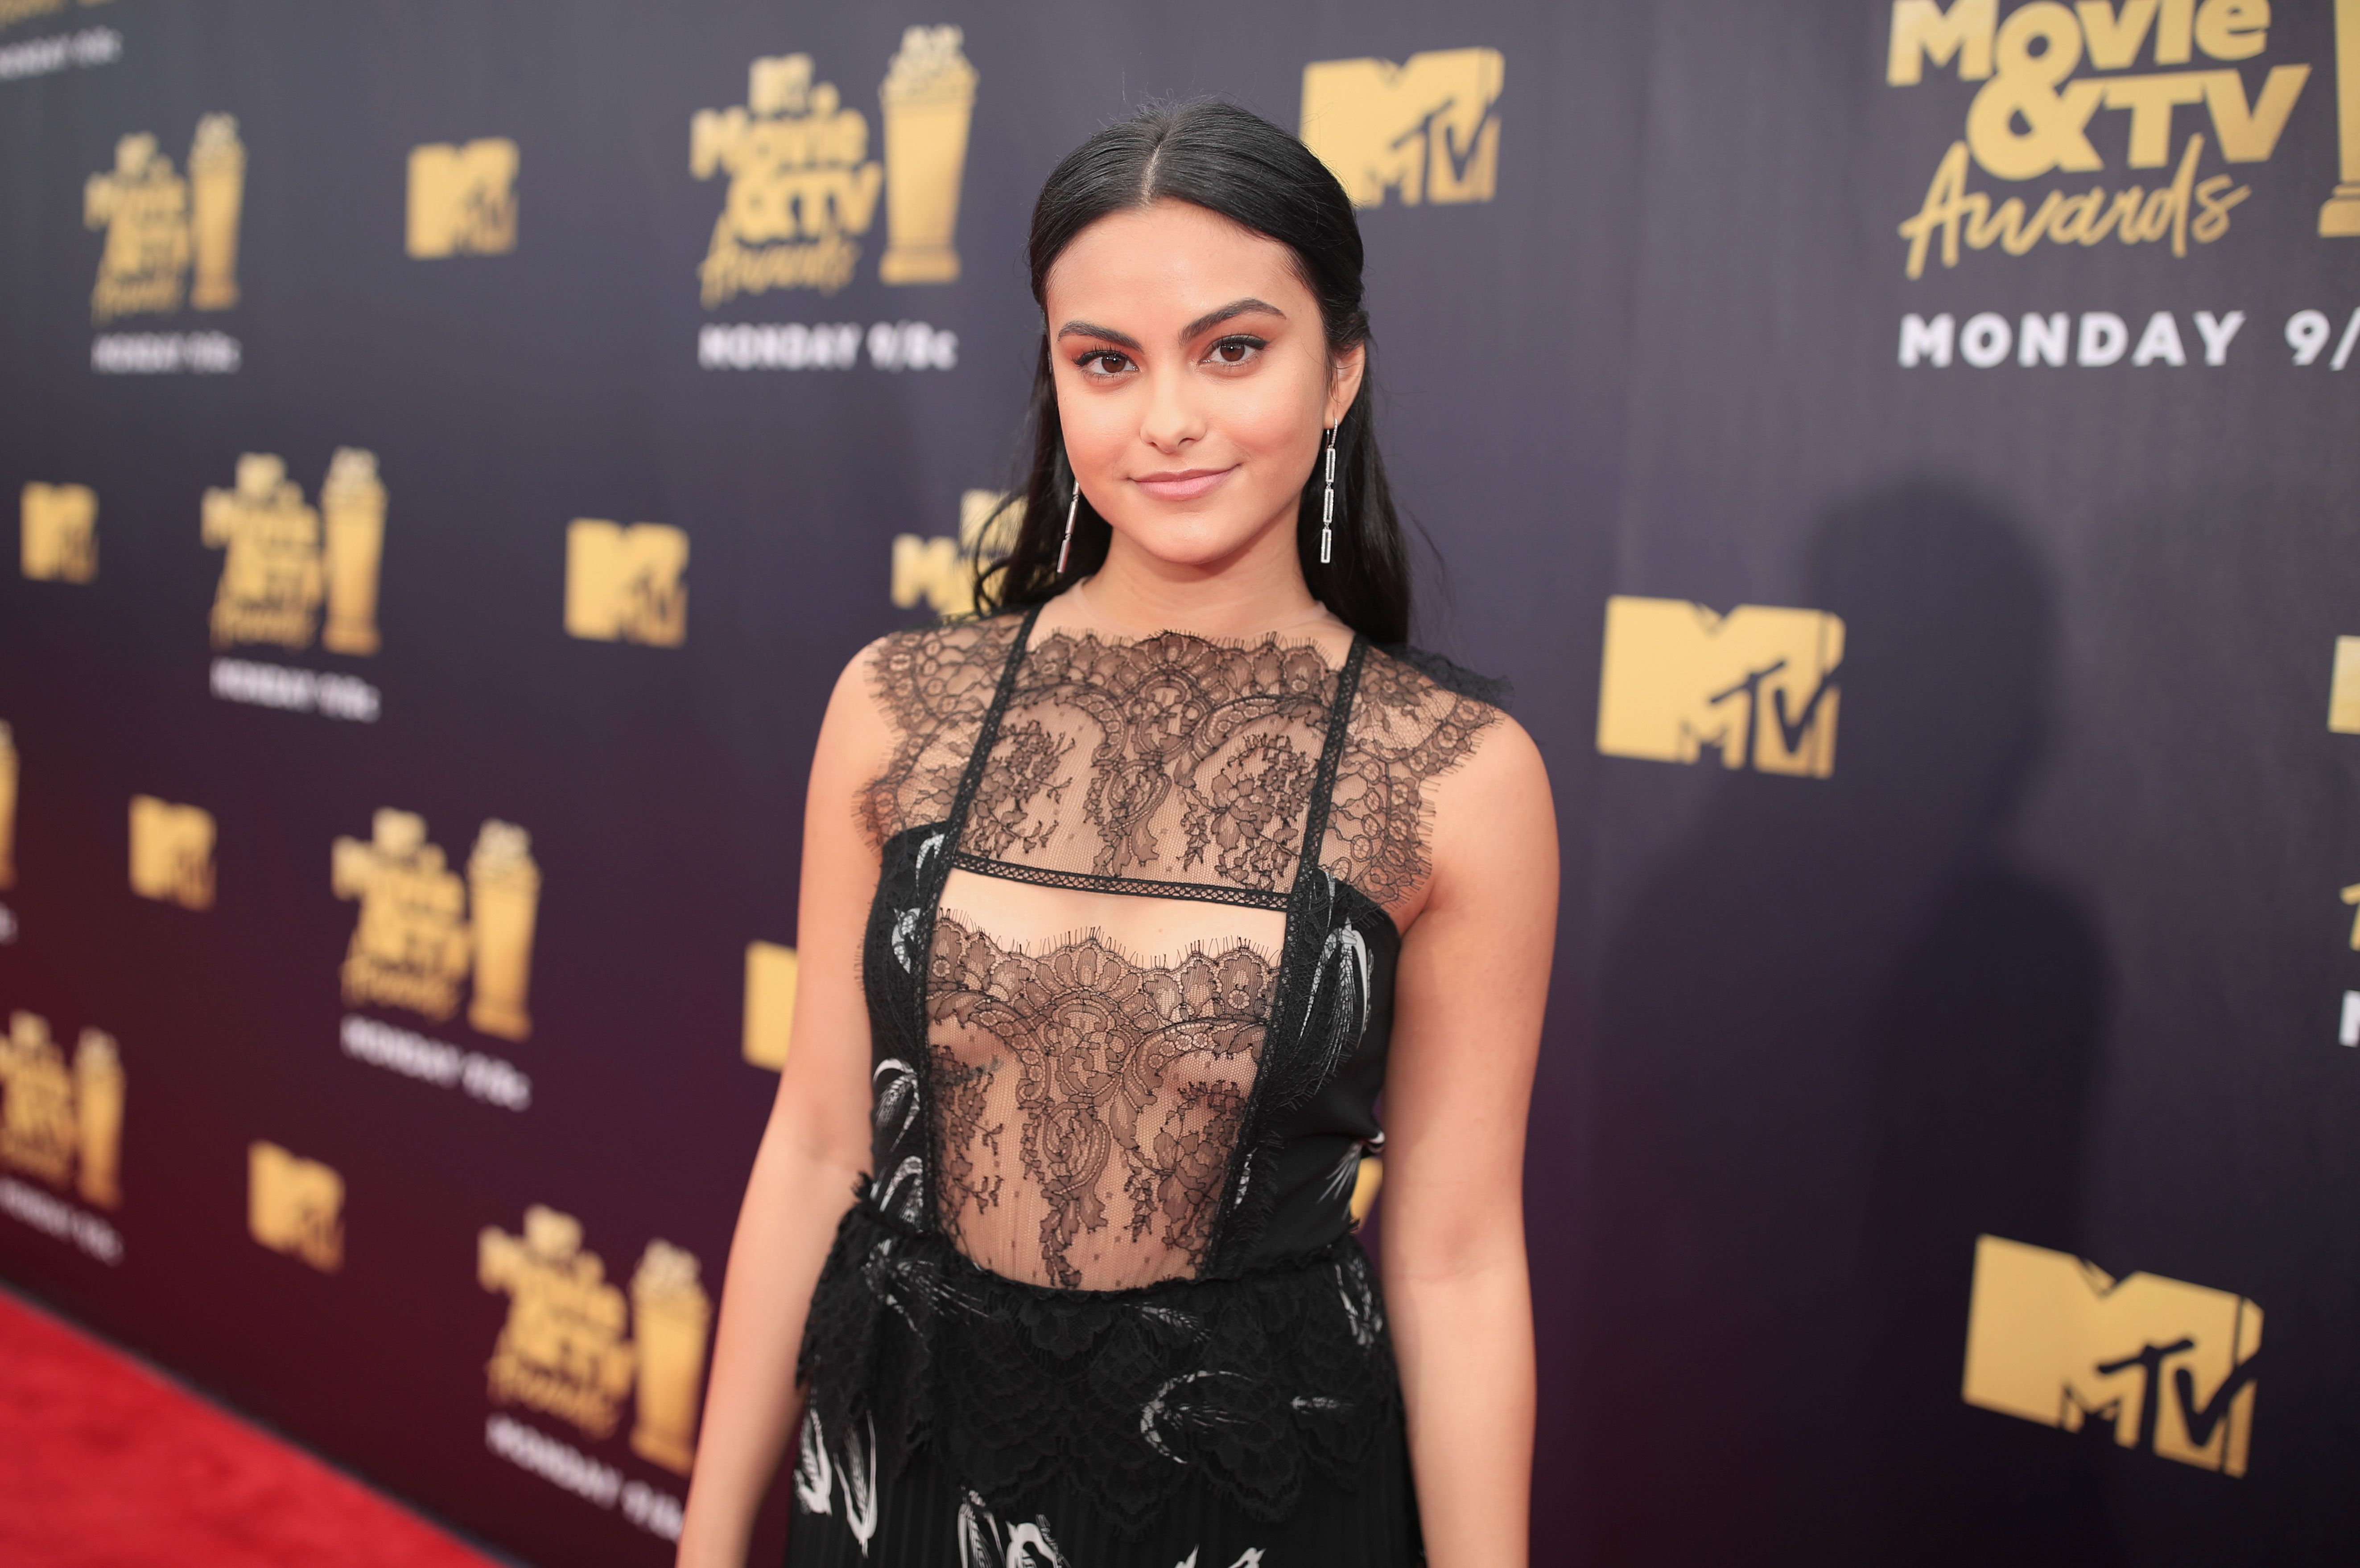 The 10 Nakedest Looks At The Mtv Movie Tv Awards